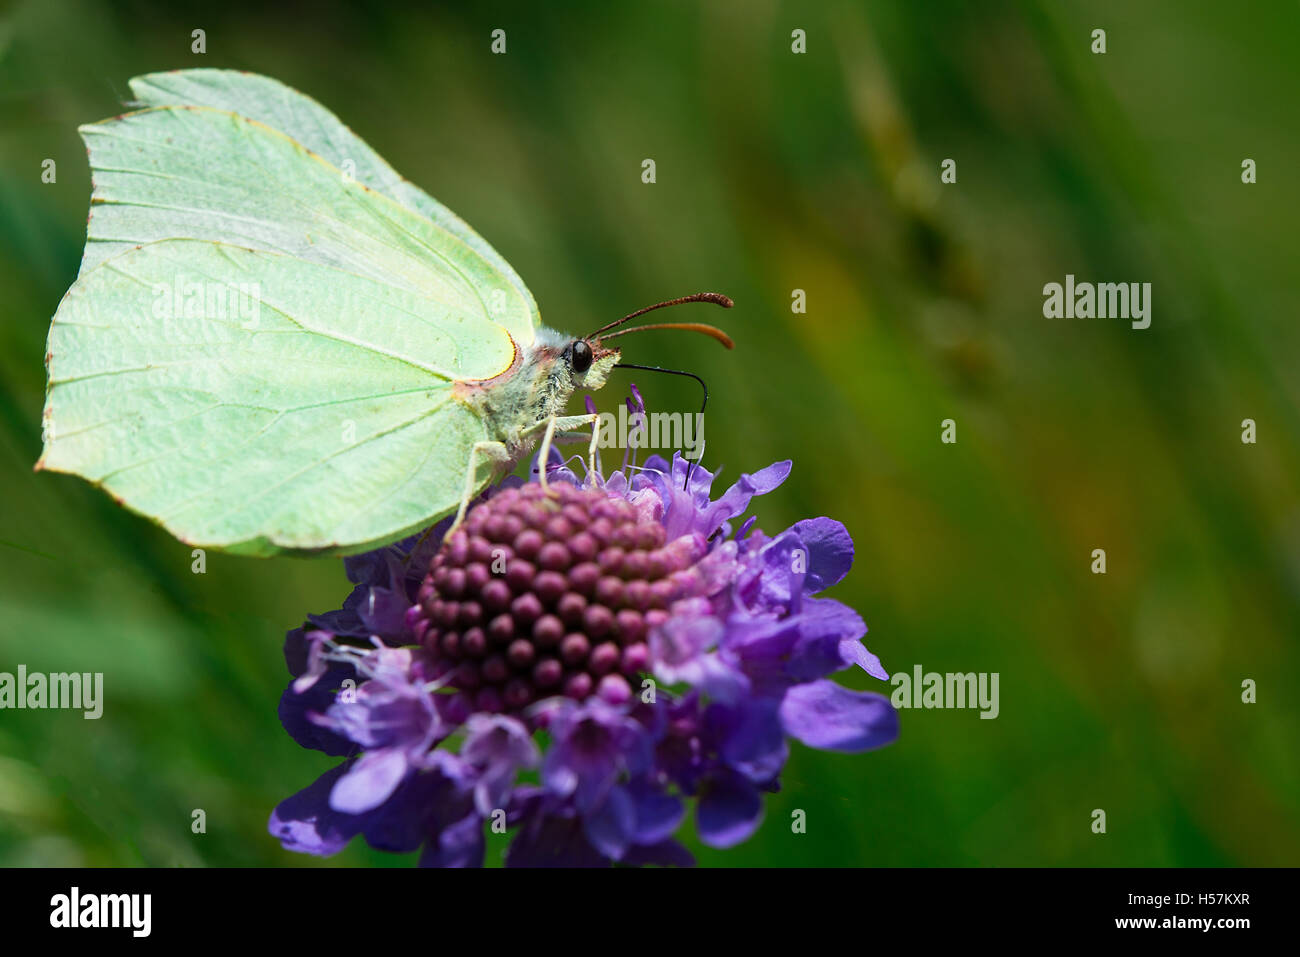 The butterfly is sucking nectar from flower - Stock Image